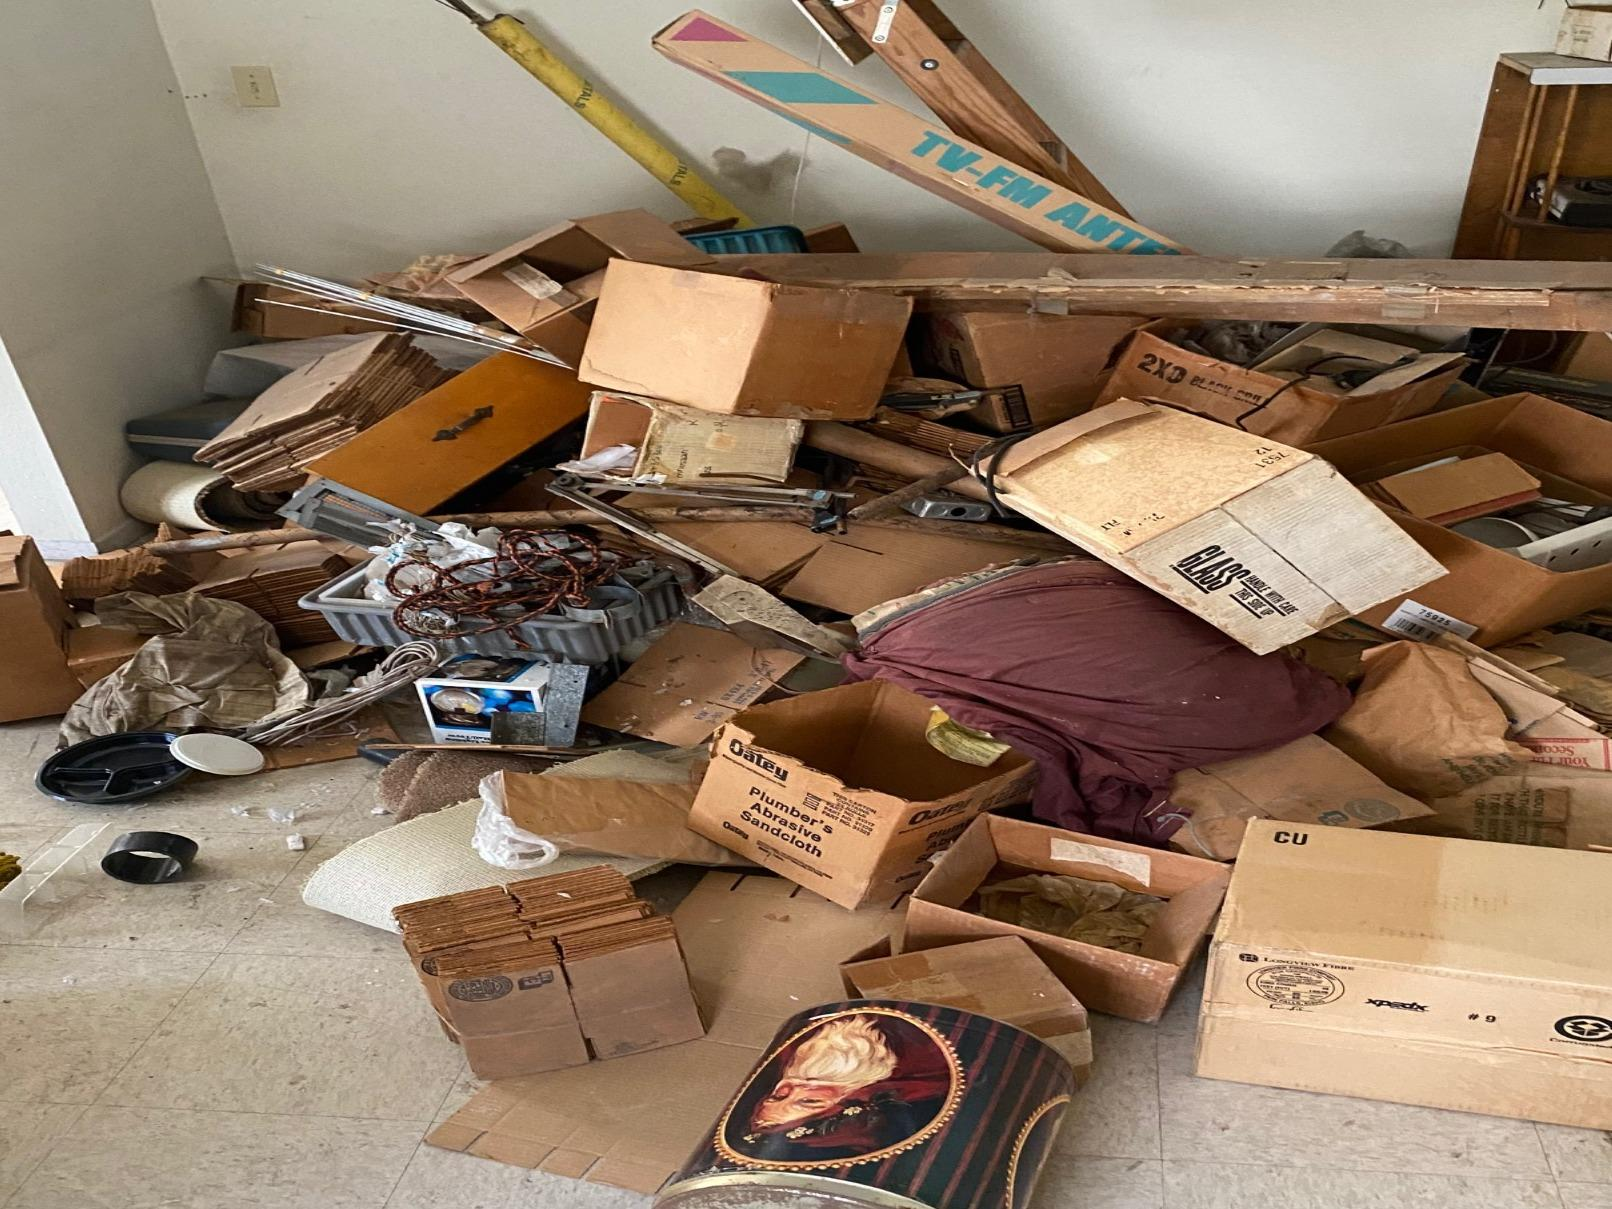 Junk Removal in Los Angeles, CA - Before Photo